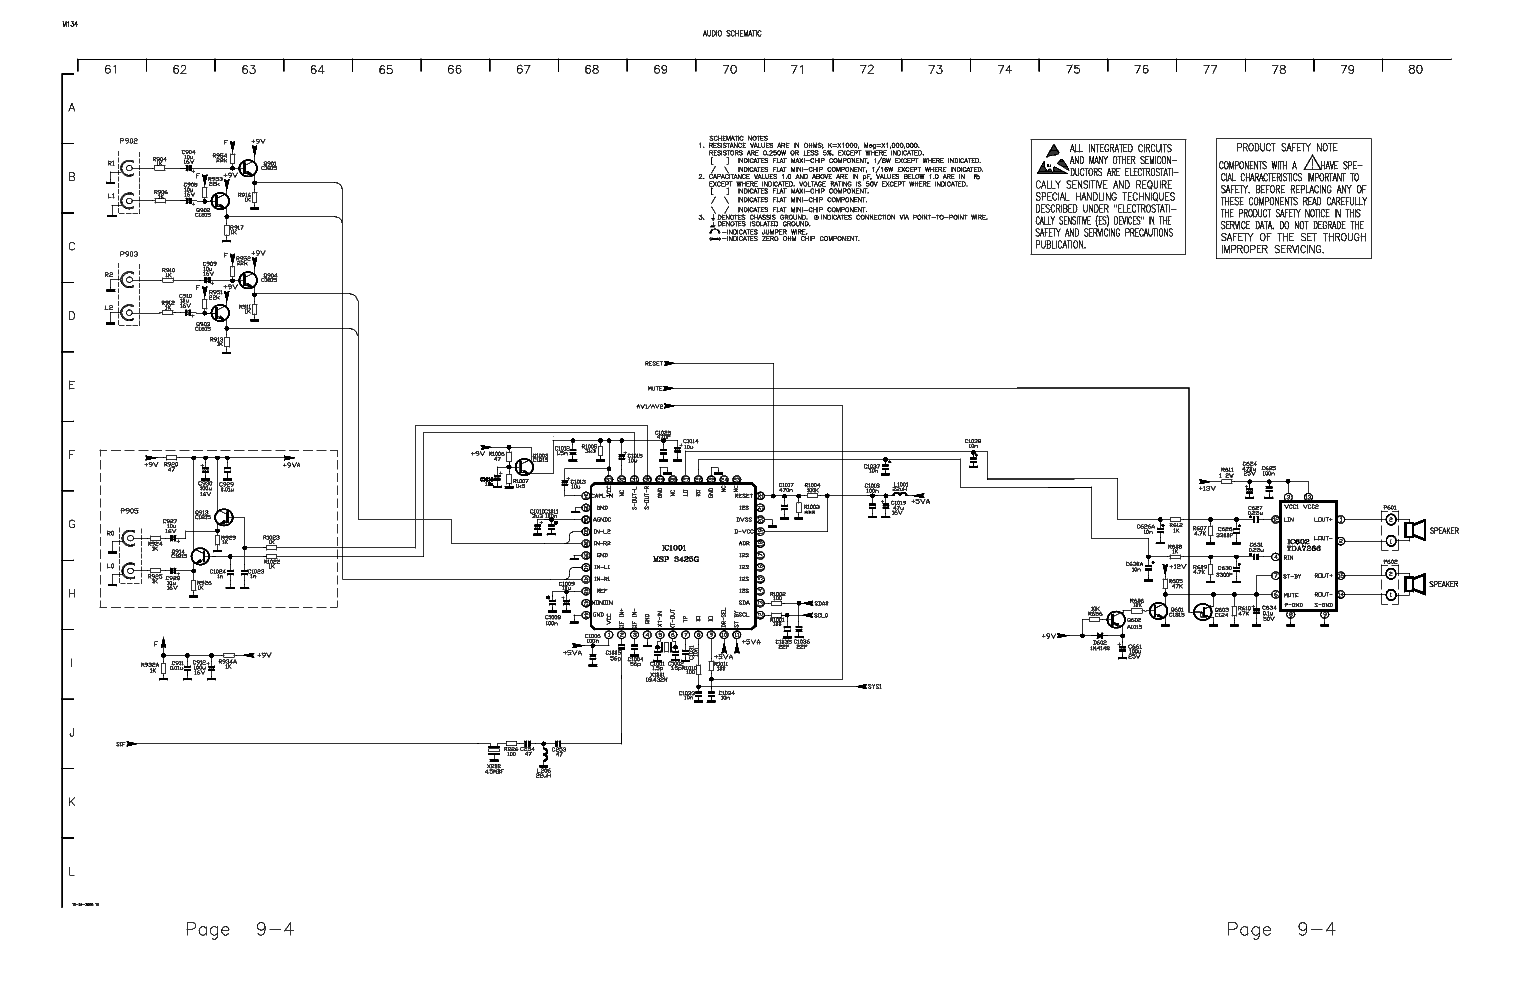 Rca Chassis M134c Service Manual Download Schematics Eeprom To Dvi Schematic 1st Page